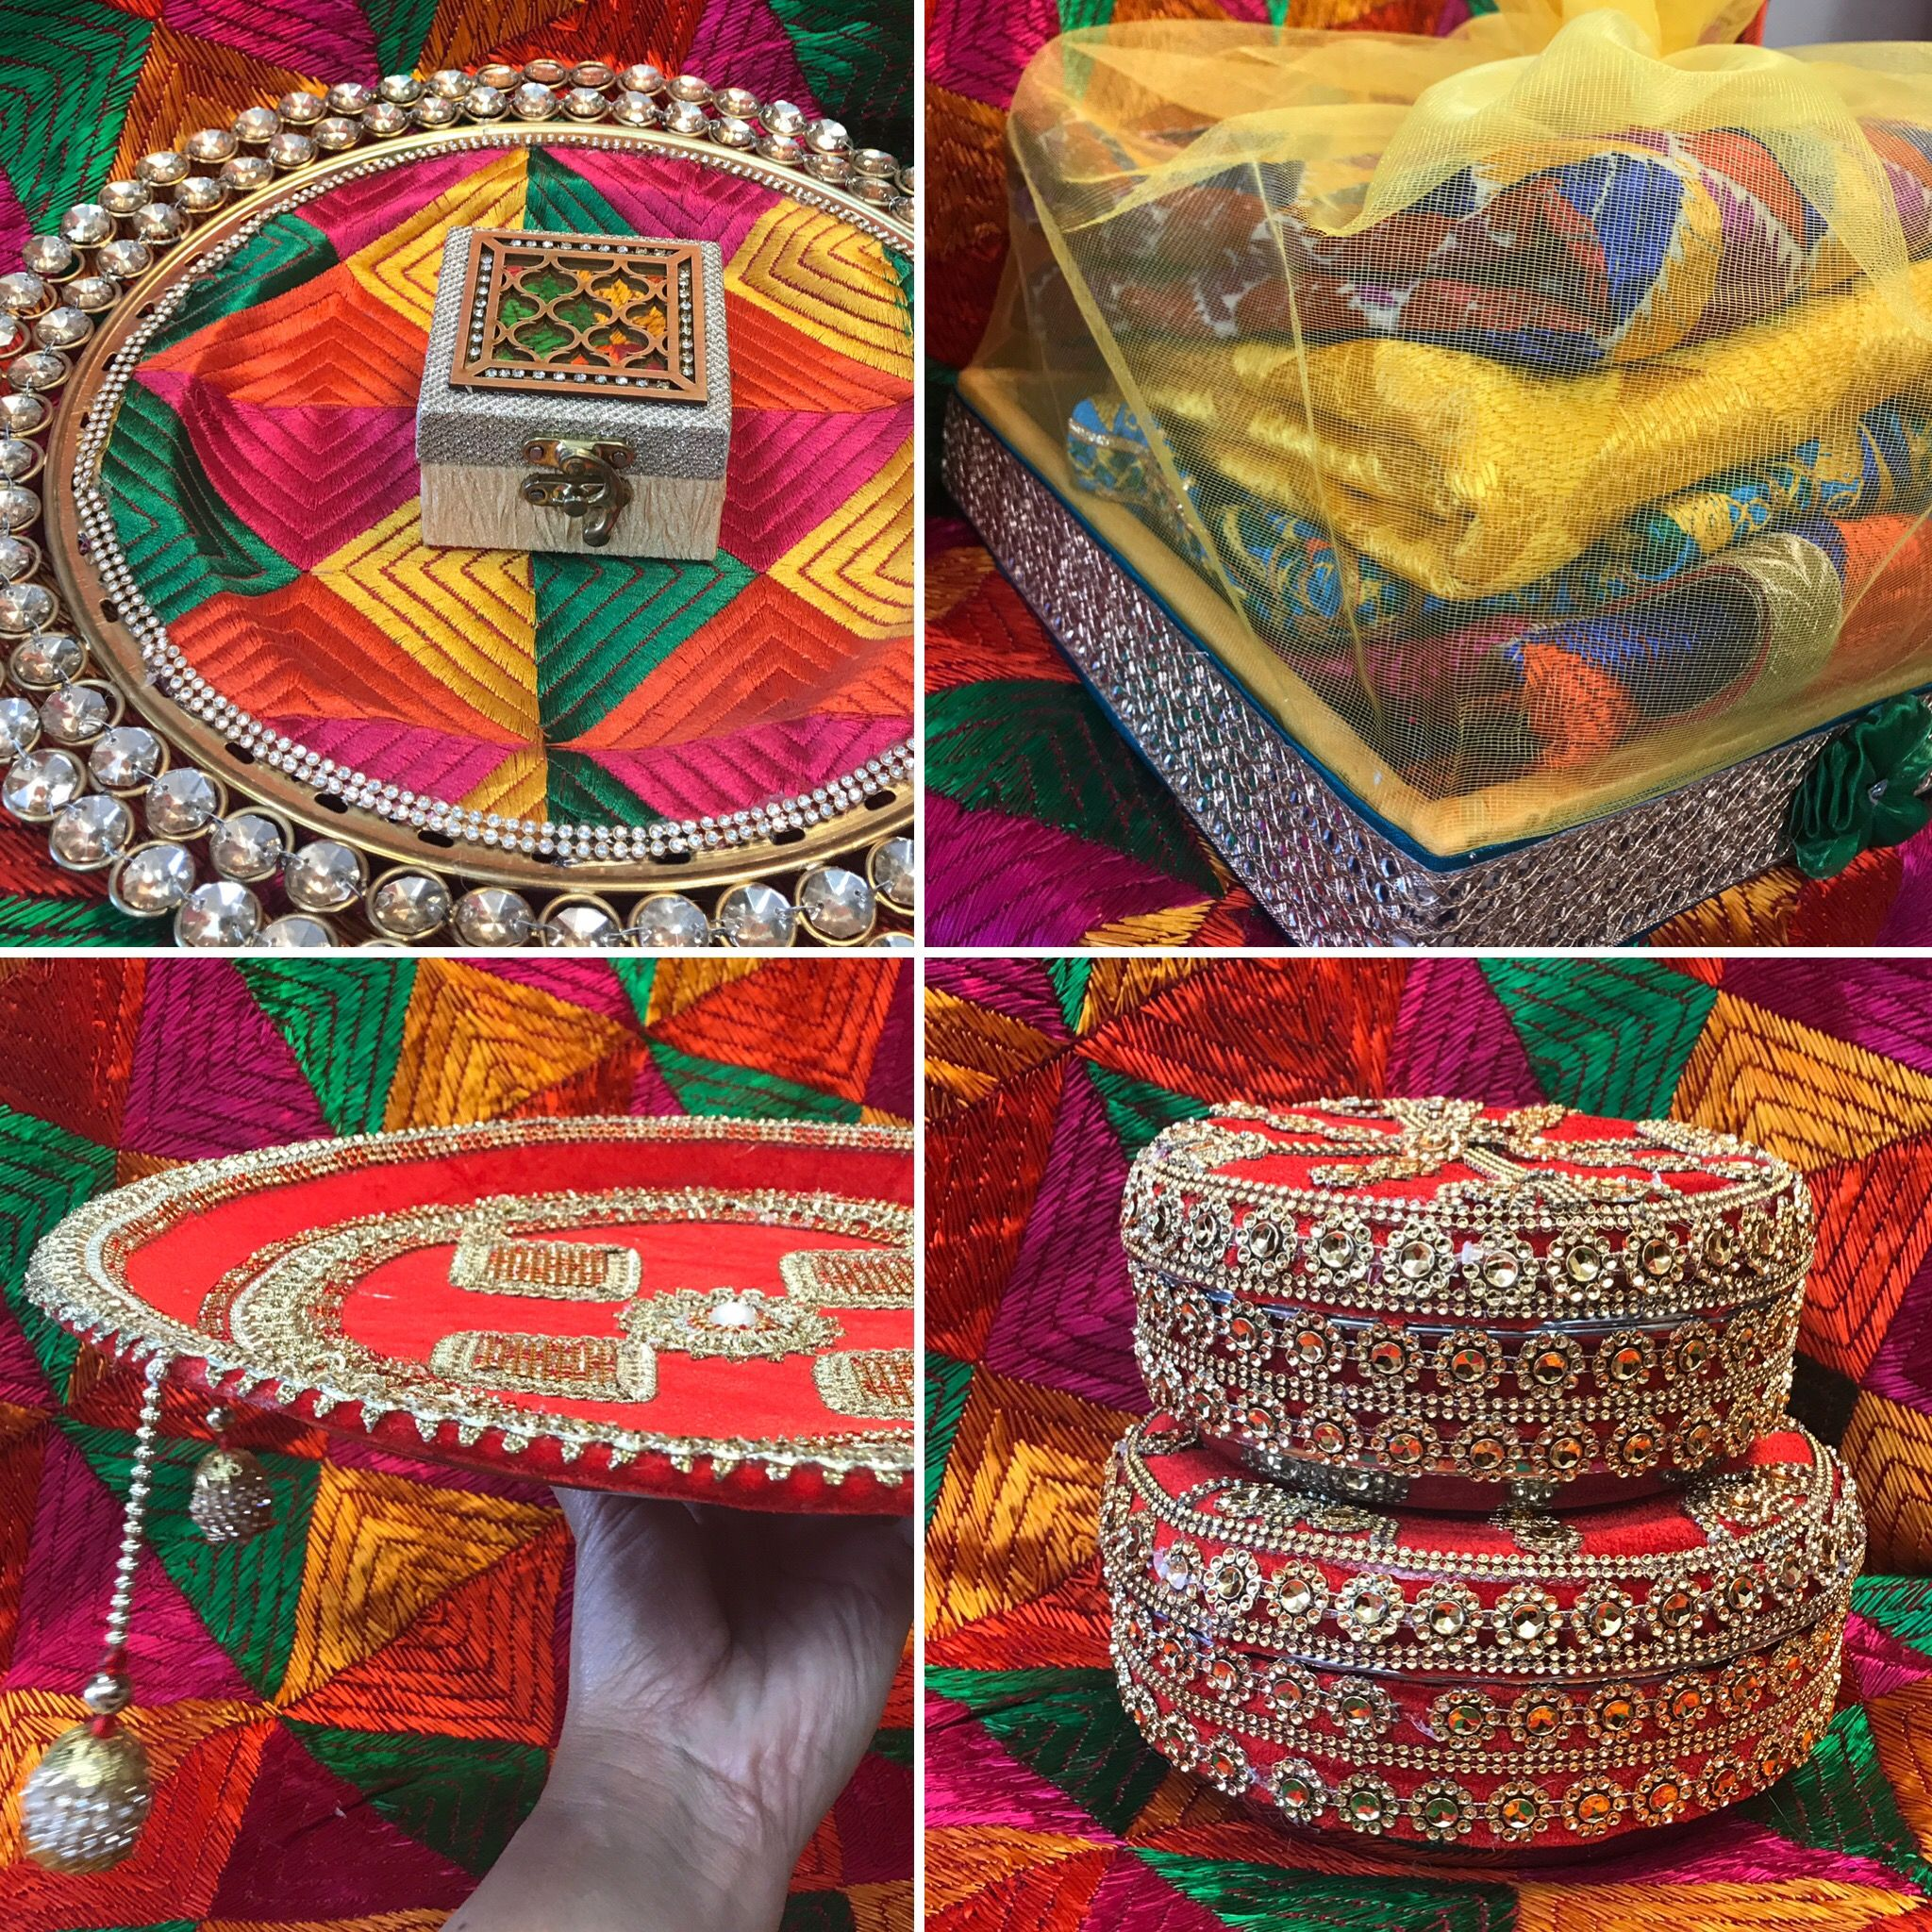 Pin On Jaggo Accessories And Mehndi Henna Outfits